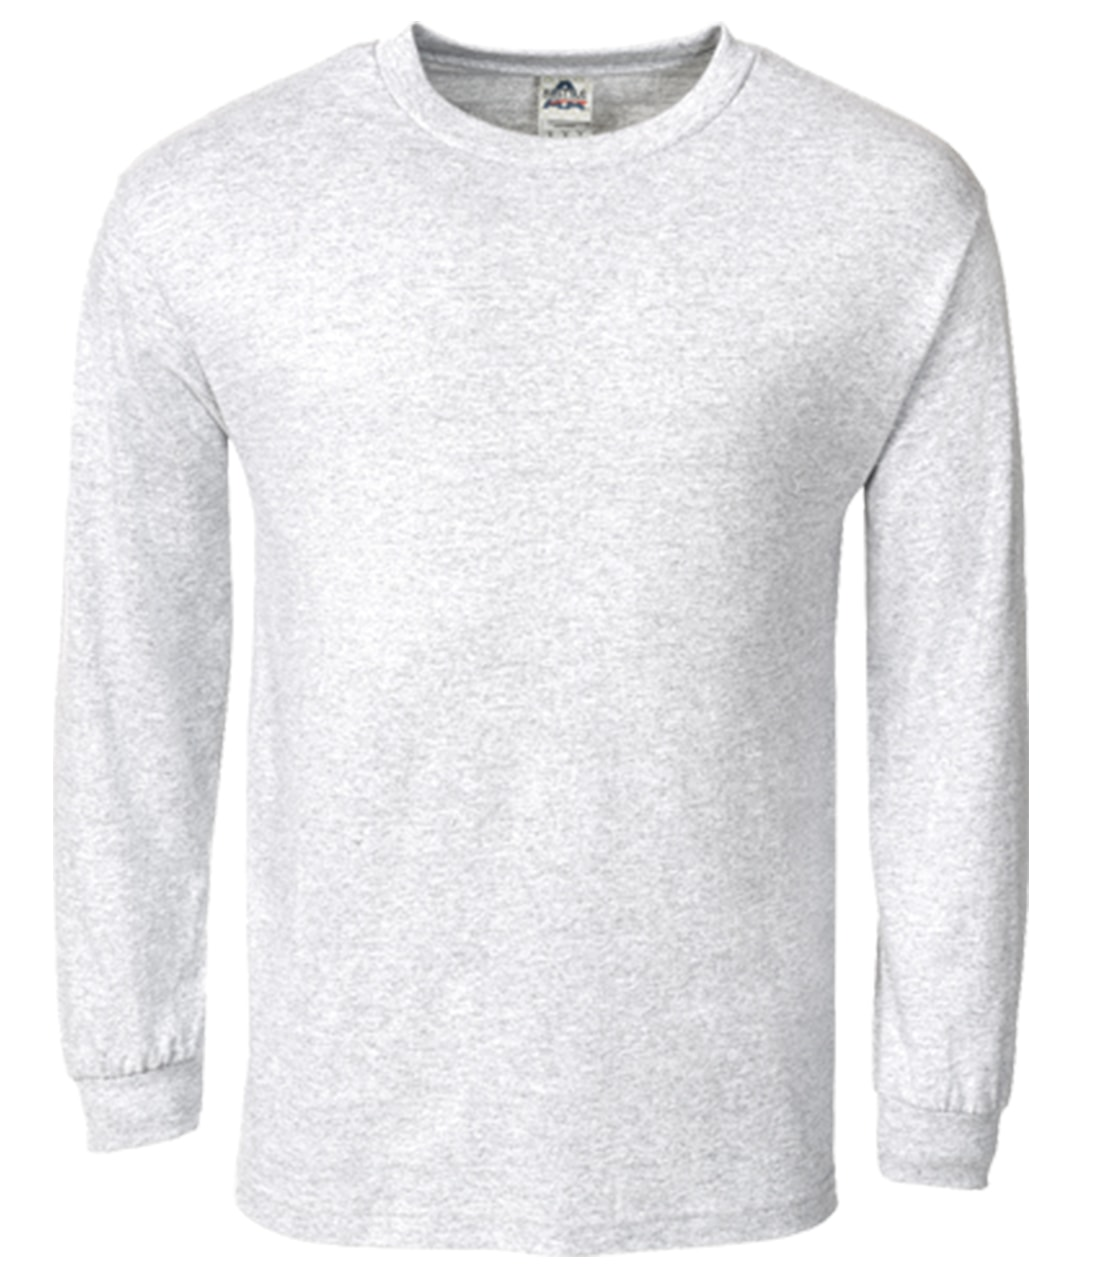 Picture of Alstyle Apparel Classic Adult Long Sleeve Tee